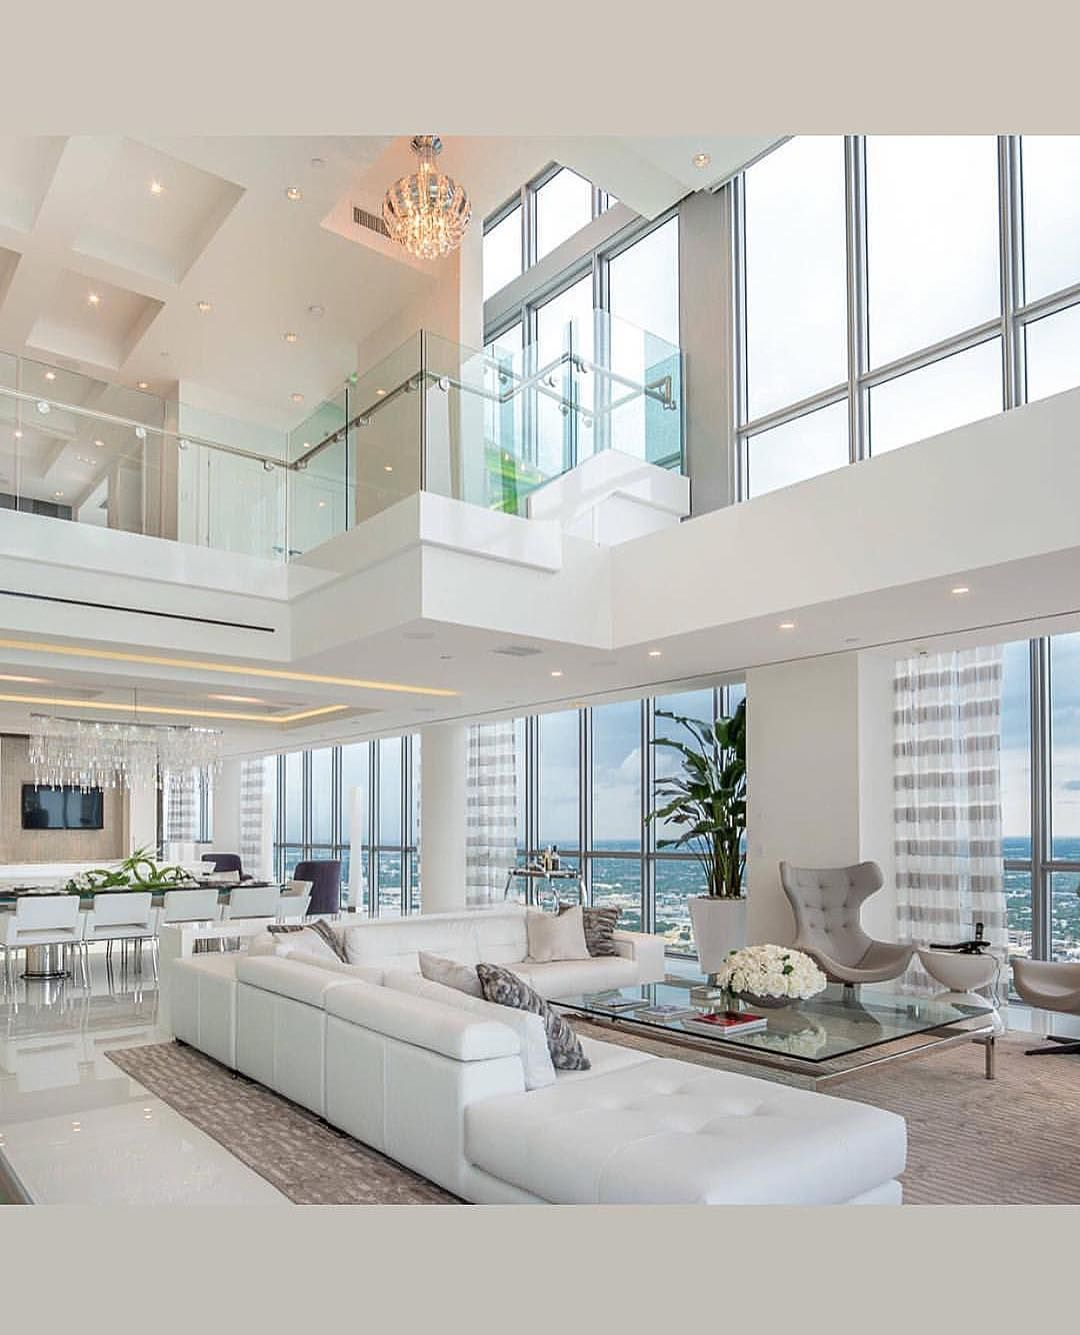 Glass Railing Overhanging The Living Room With High